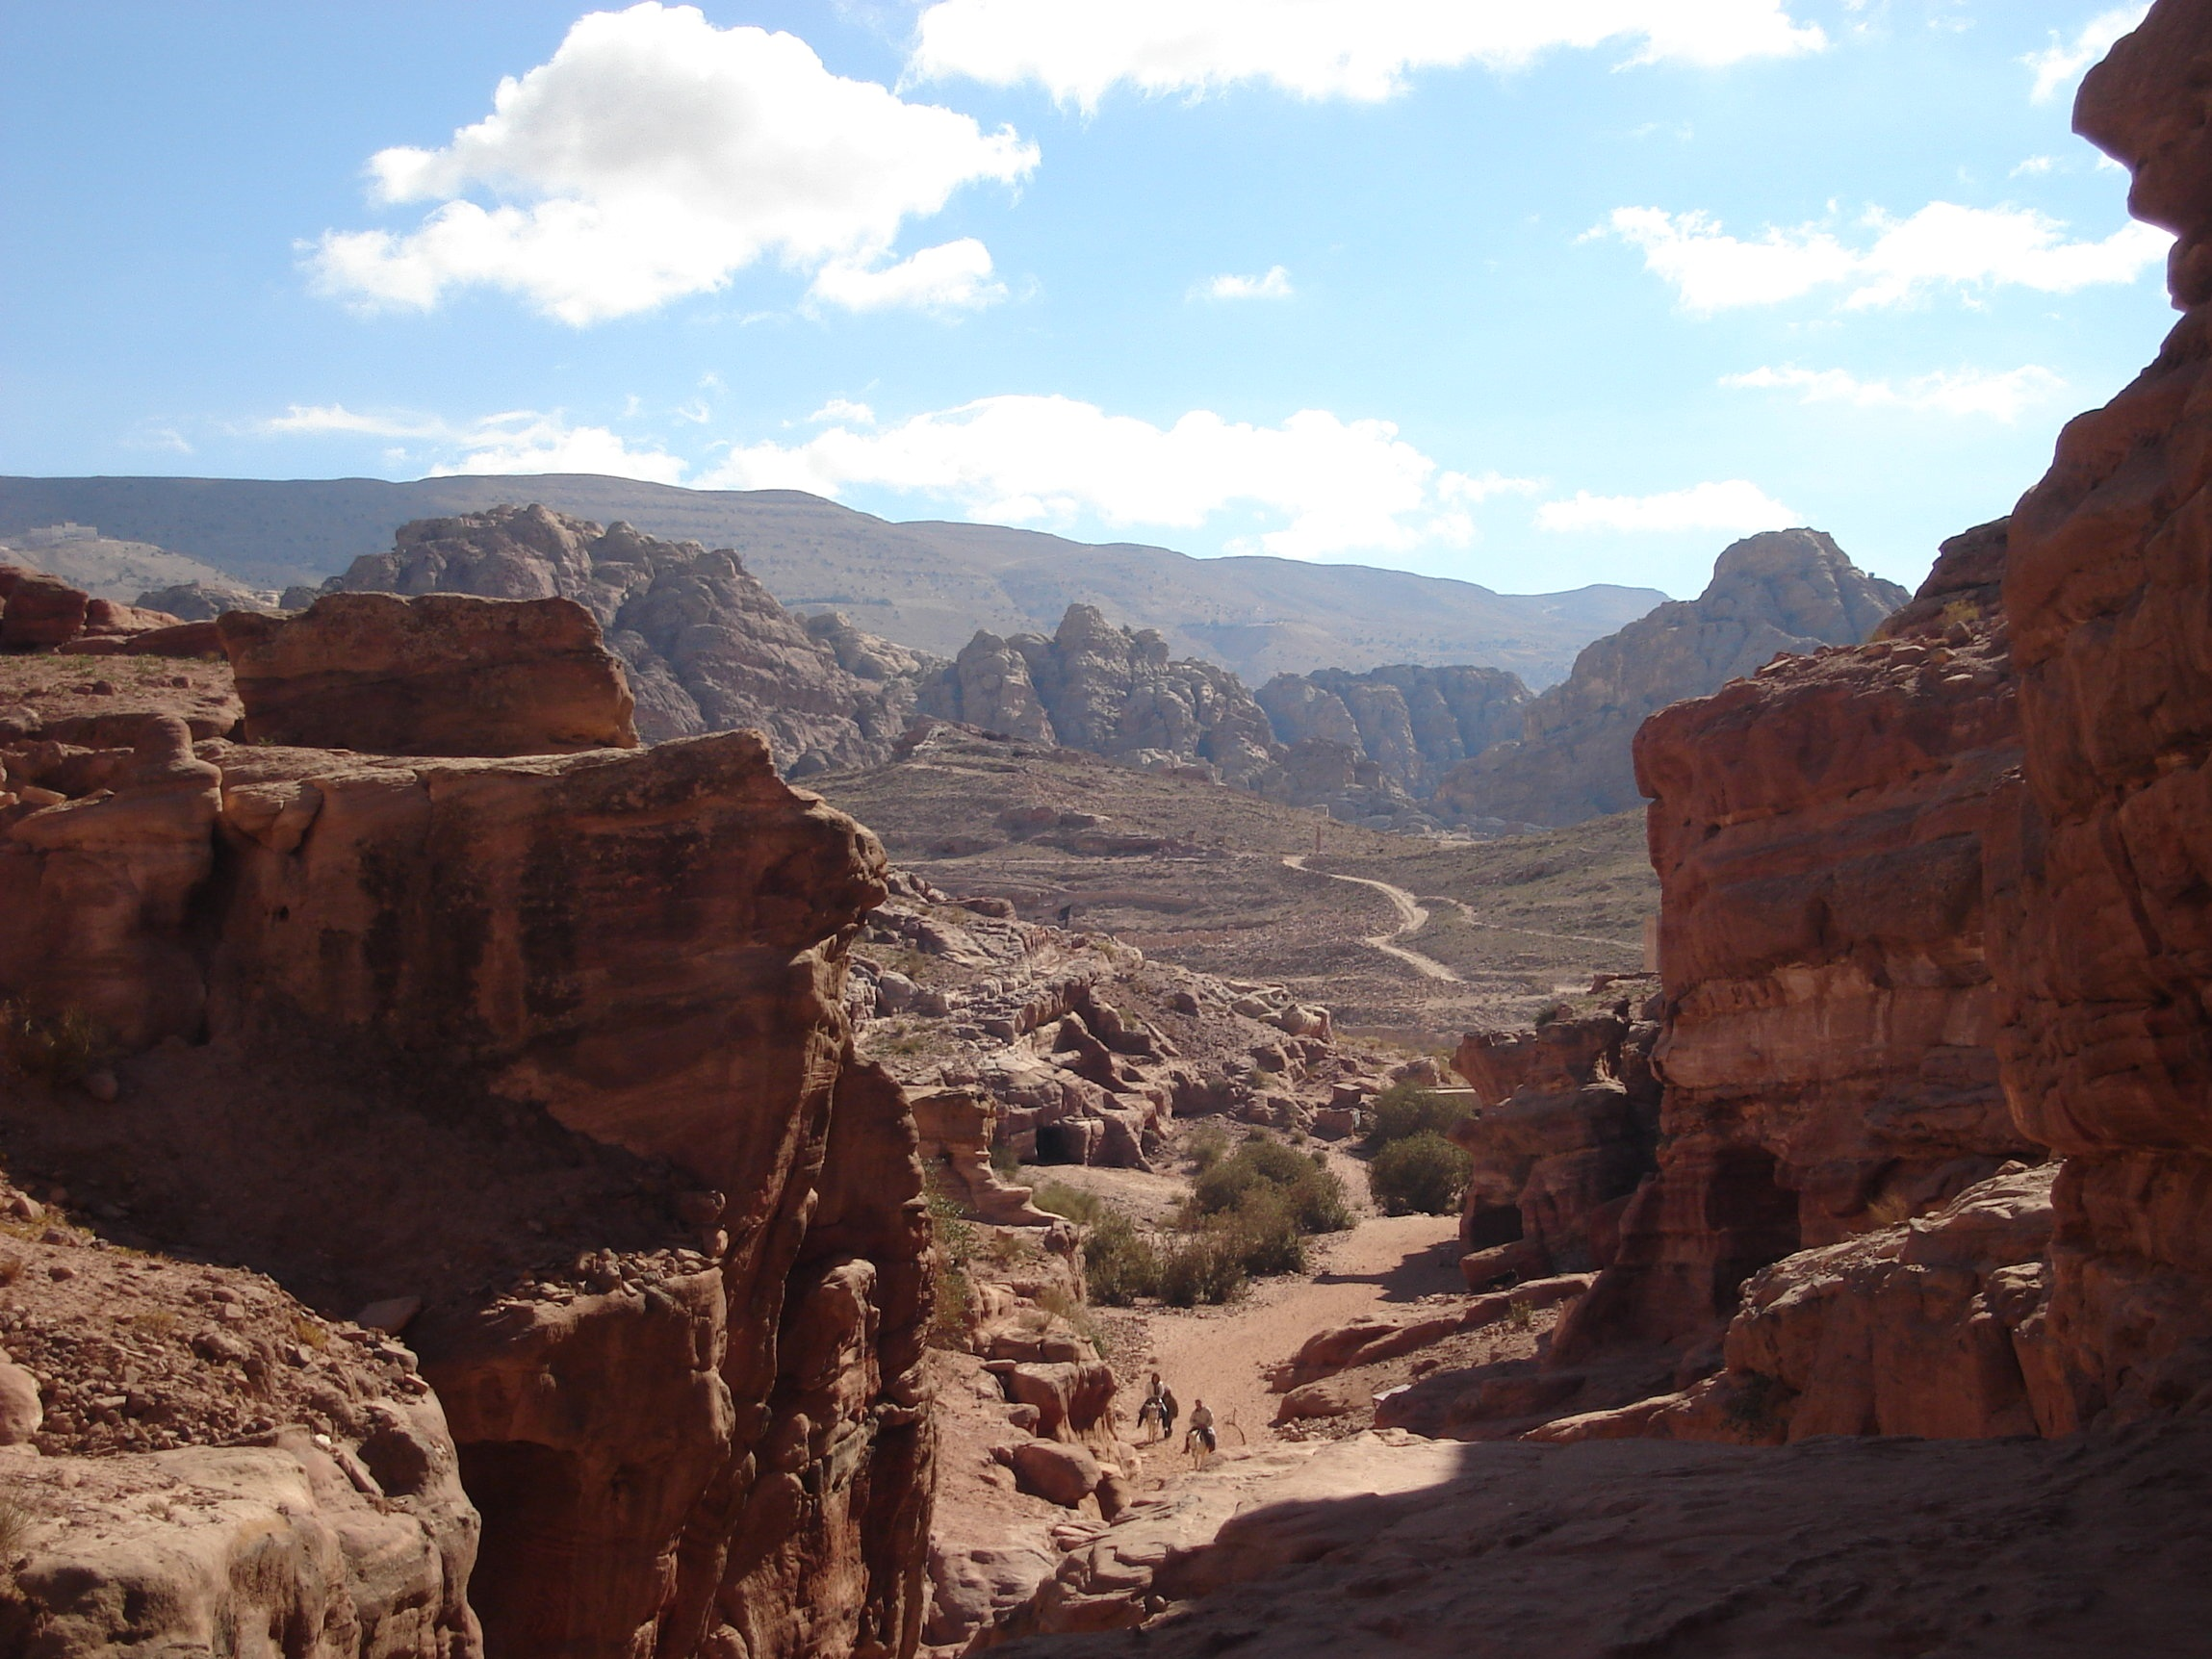 The view from the Monastery at Petra